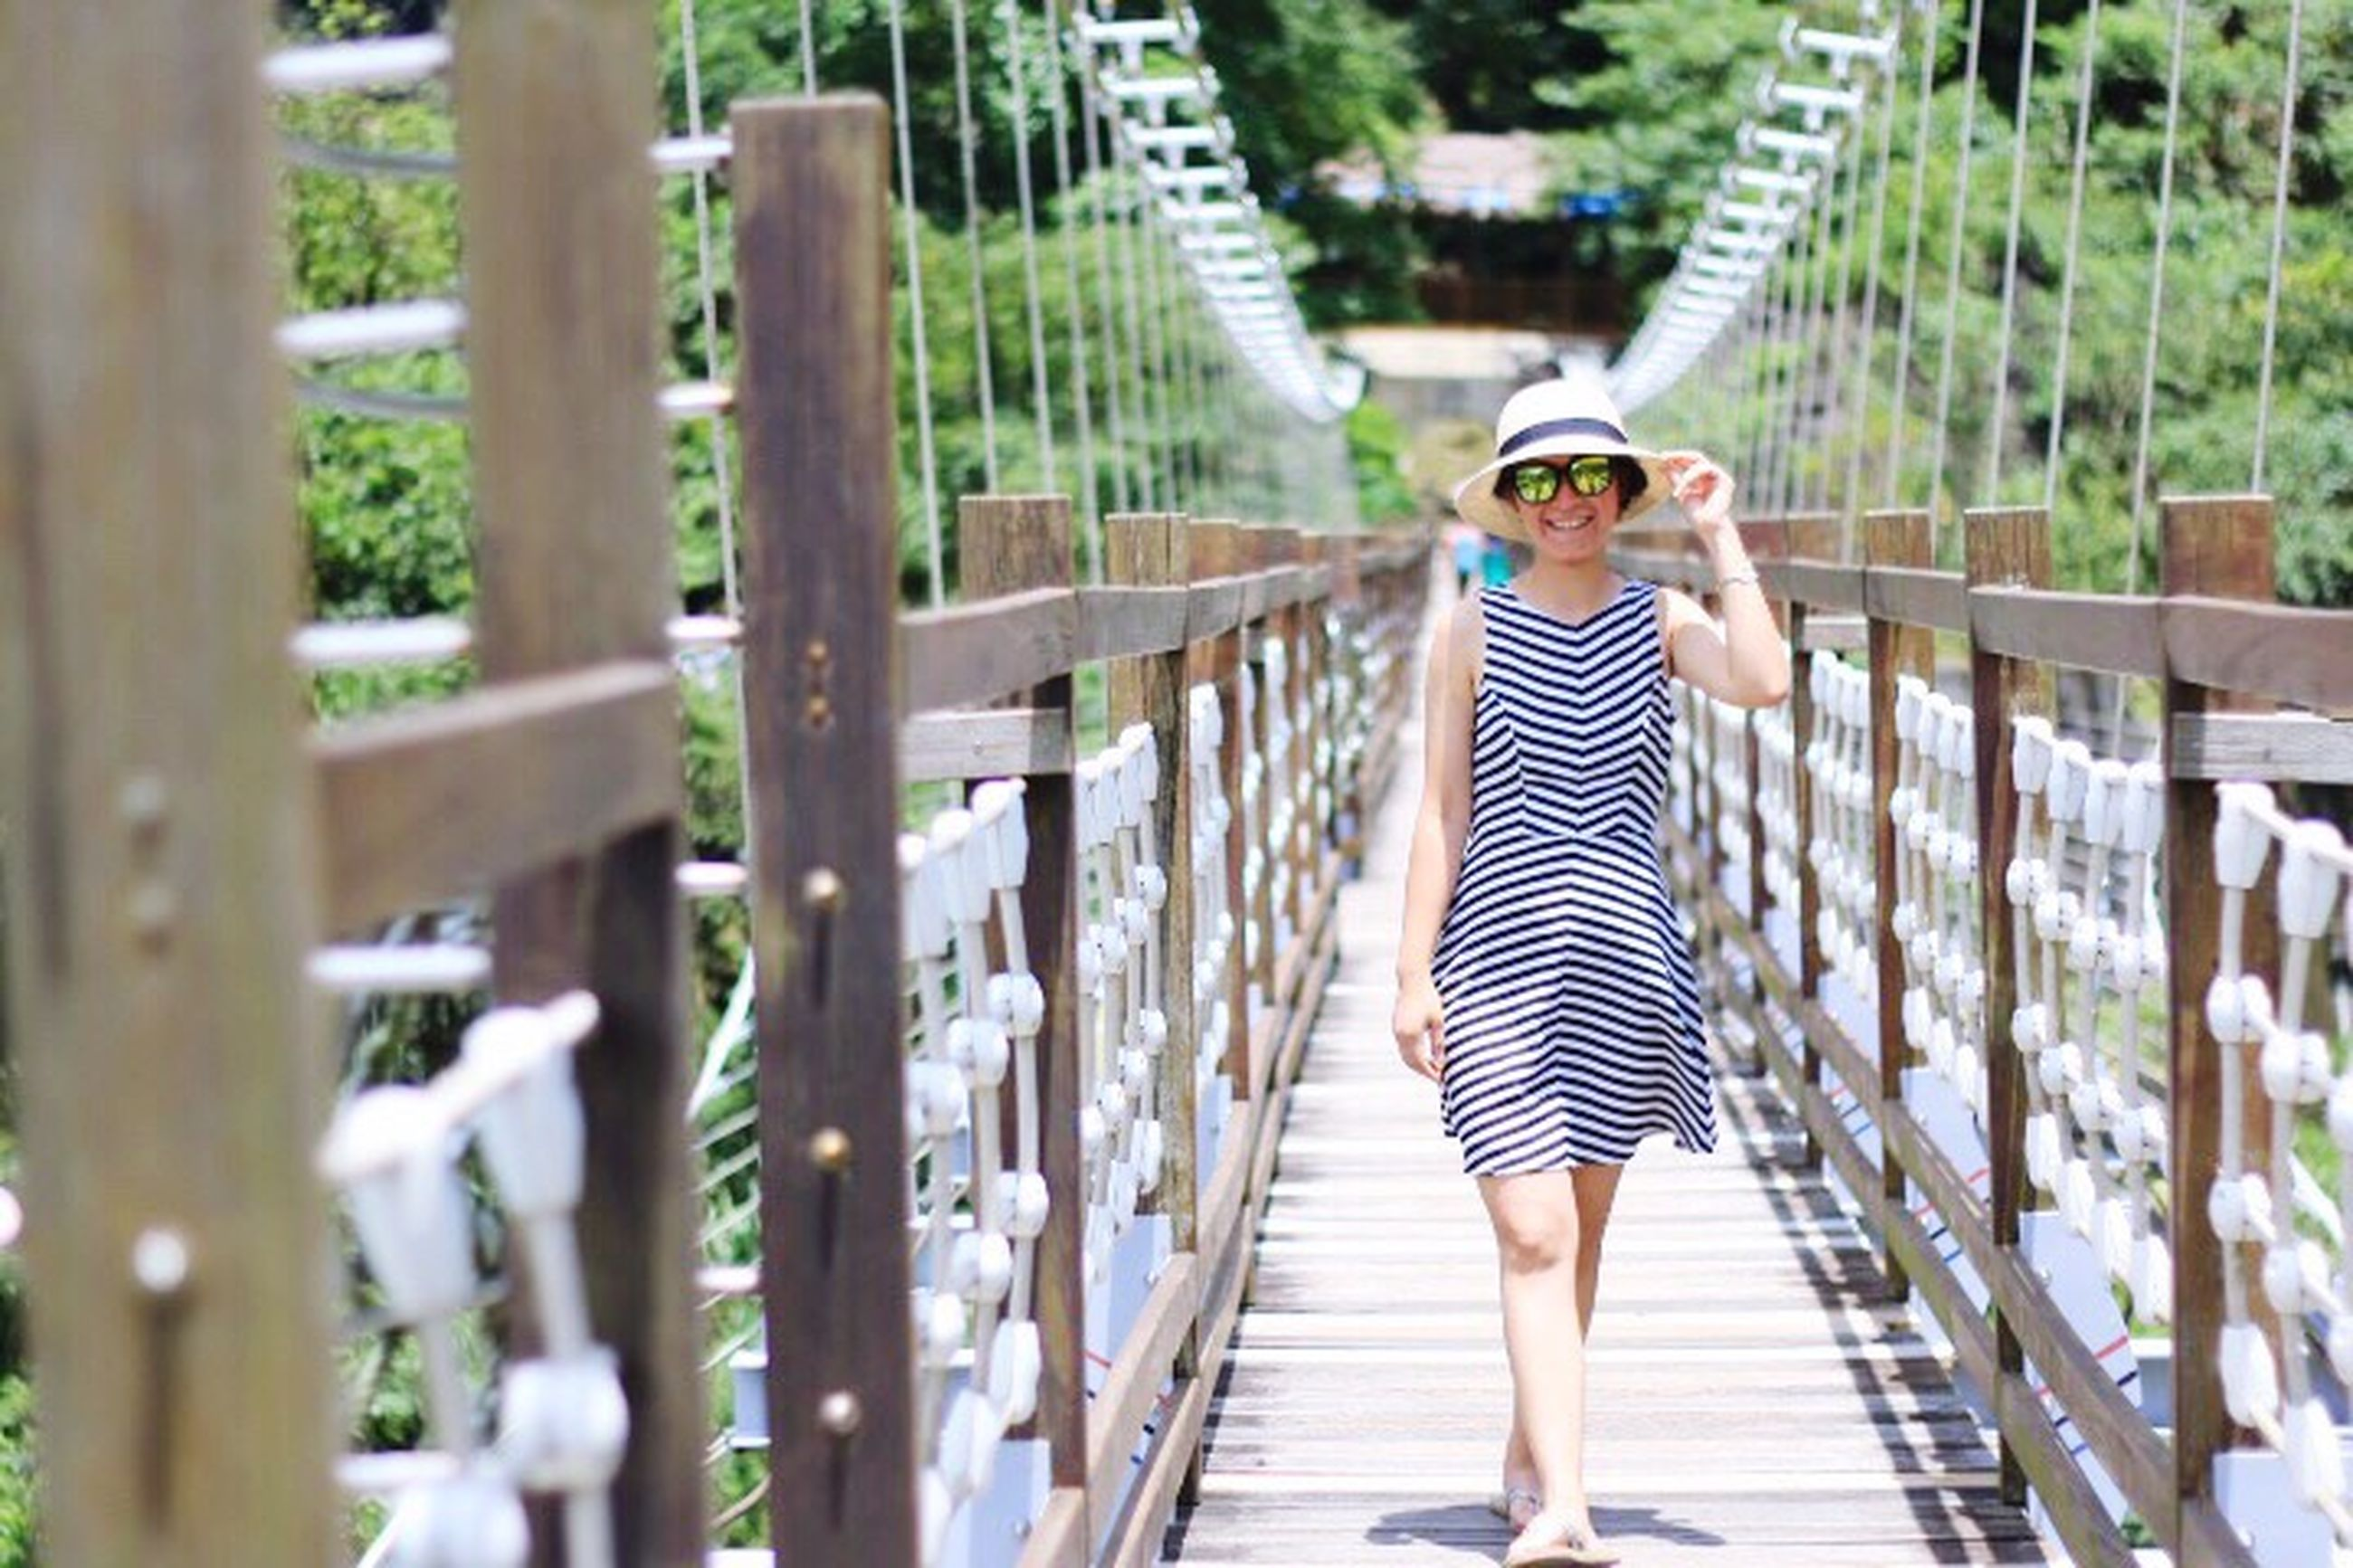 striped, one person, young adult, full length, casual clothing, young women, one woman only, railing, only women, adults only, adult, leisure activity, standing, real people, outdoors, beautiful woman, bridge - man made structure, day, women, vacations, one young woman only, people, lifestyles, footbridge, beautiful people, smiling, portrait, beauty in nature, nature